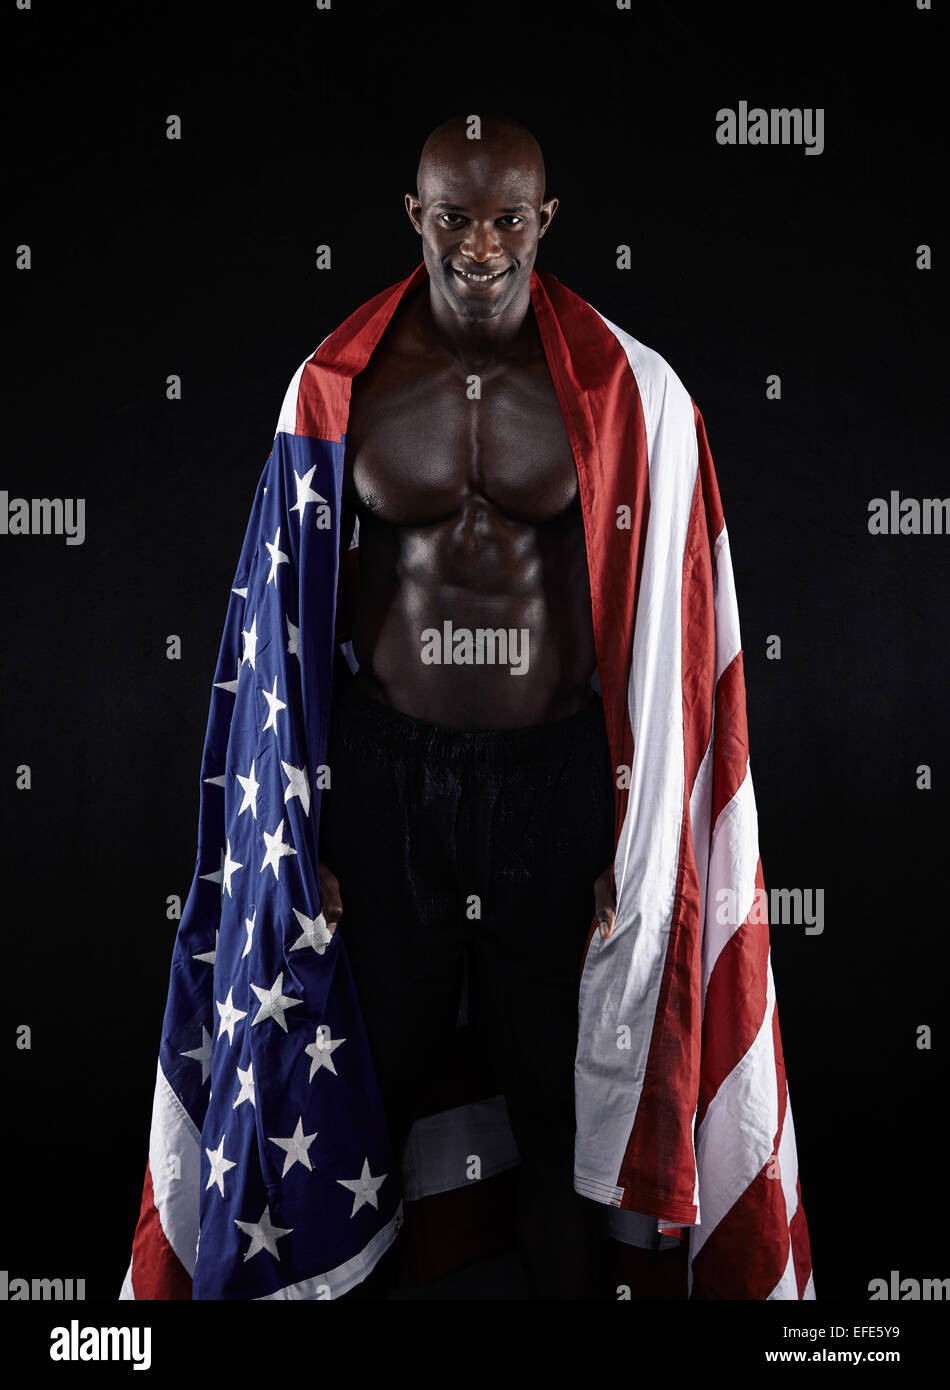 Young man wrapped in American flag against black background. Studio shot of muscular sportsman with USA flag looking - Stock Image